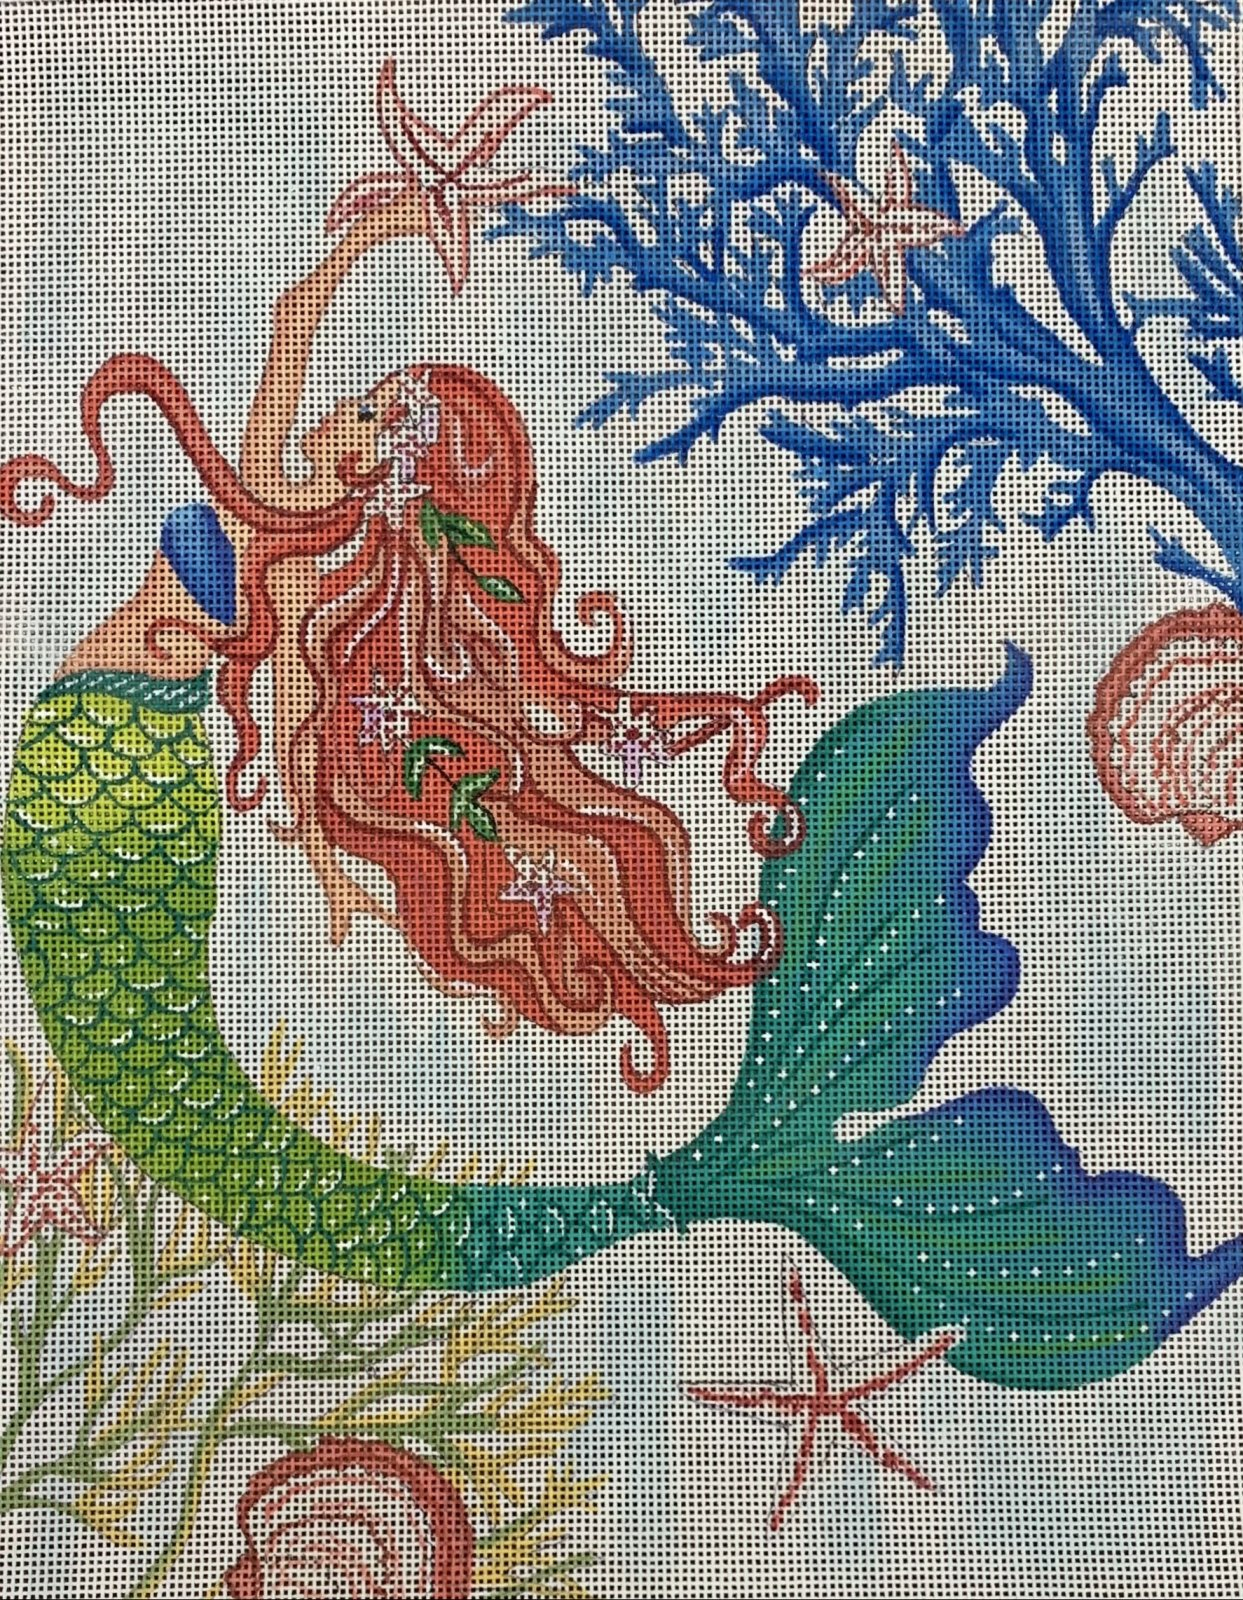 Mermaid with Seastar